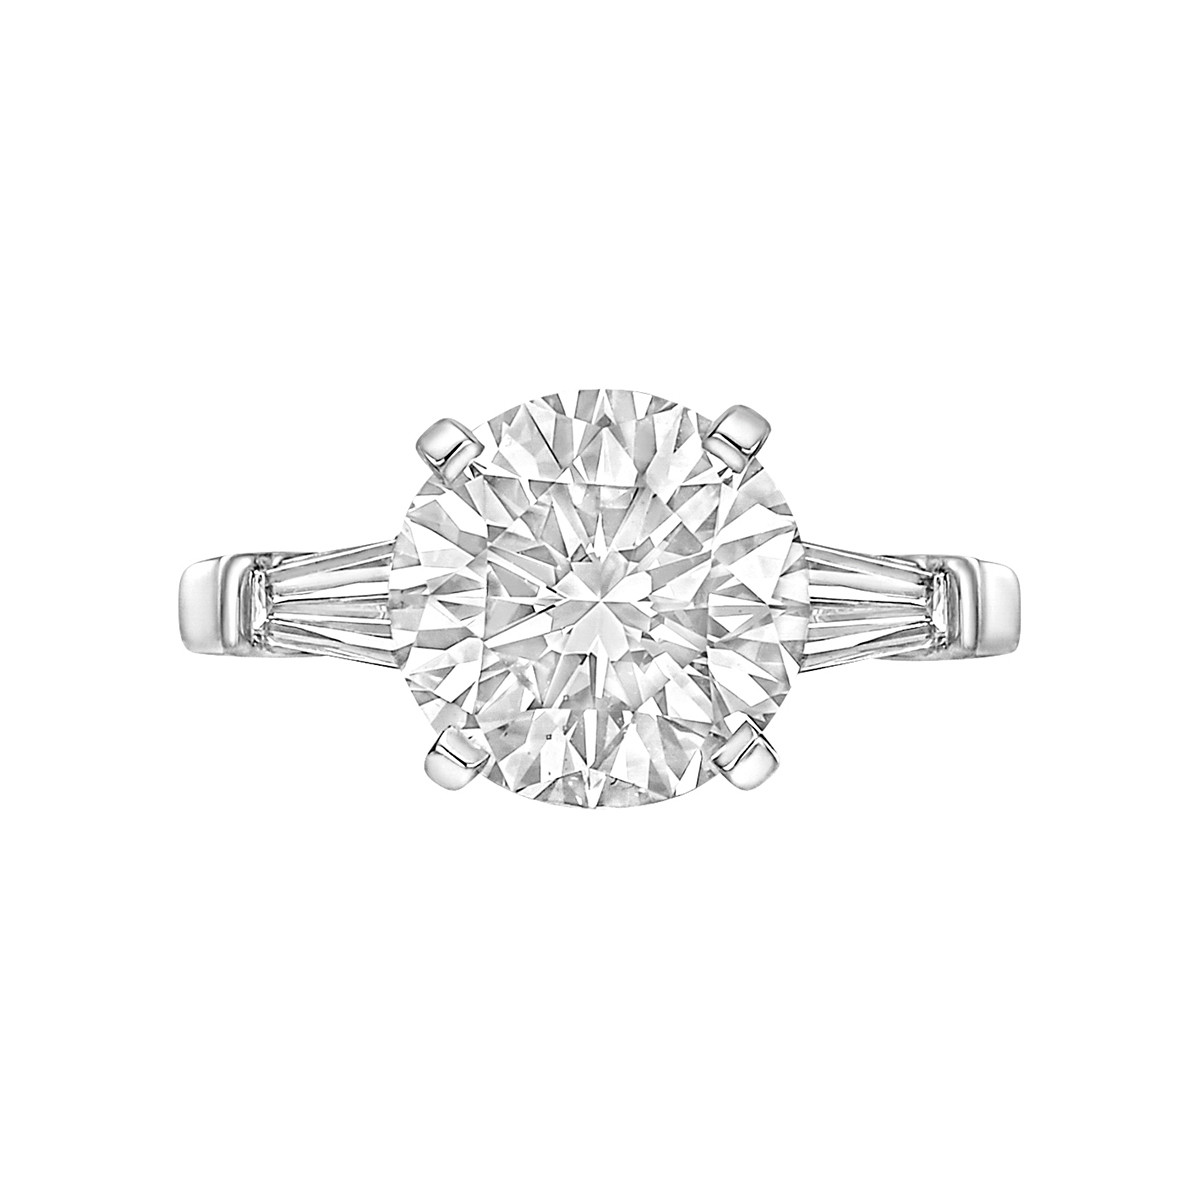 3.06ct Colorless Round Brilliant Diamond Ring